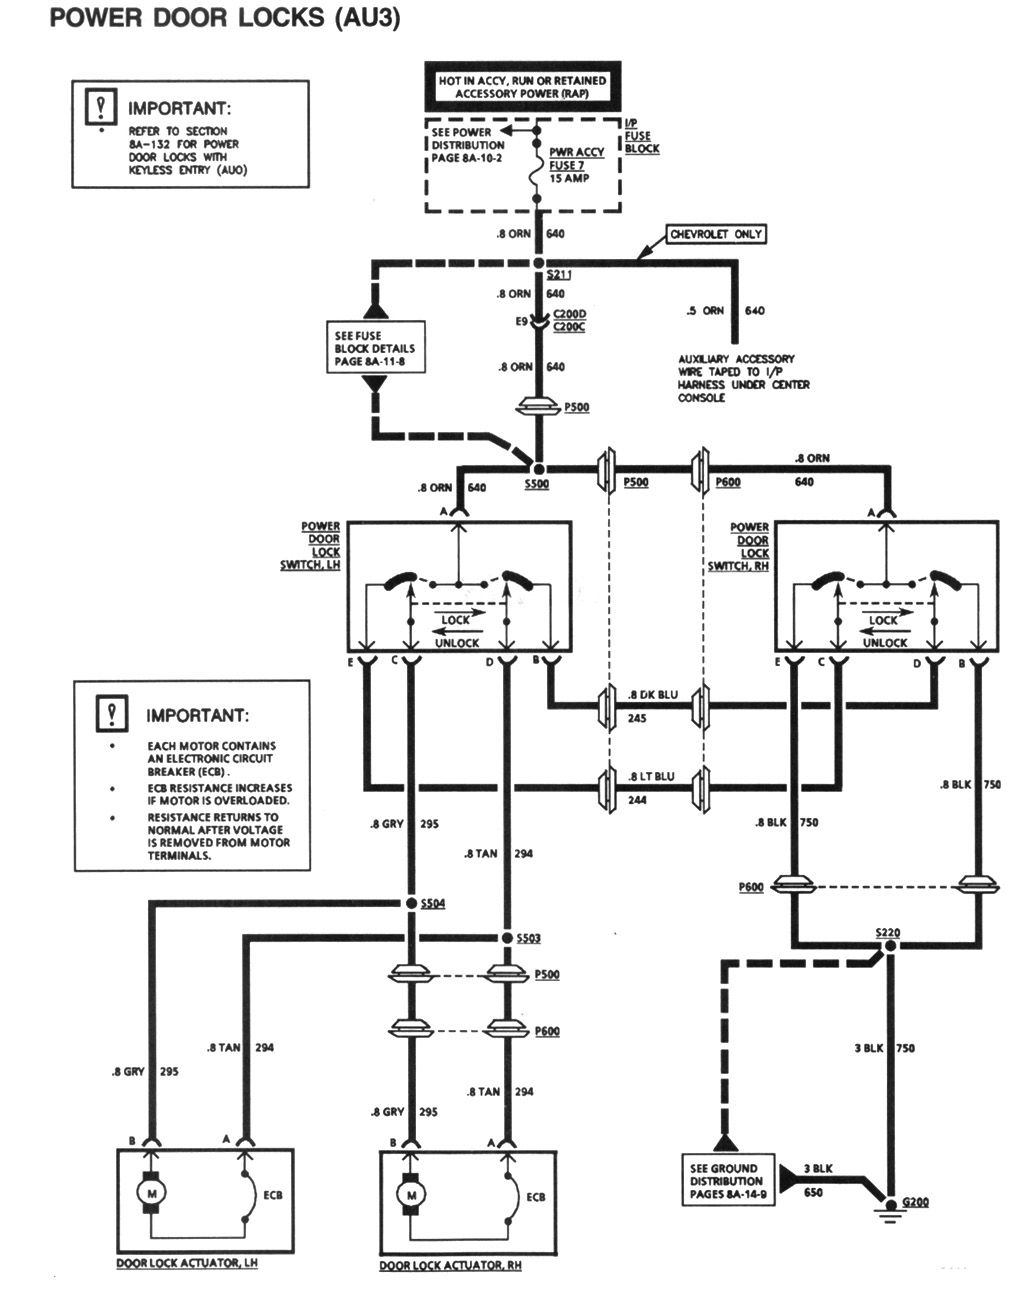 Door Diagram Lock & Power Door Lock Relay Wiring Power Image